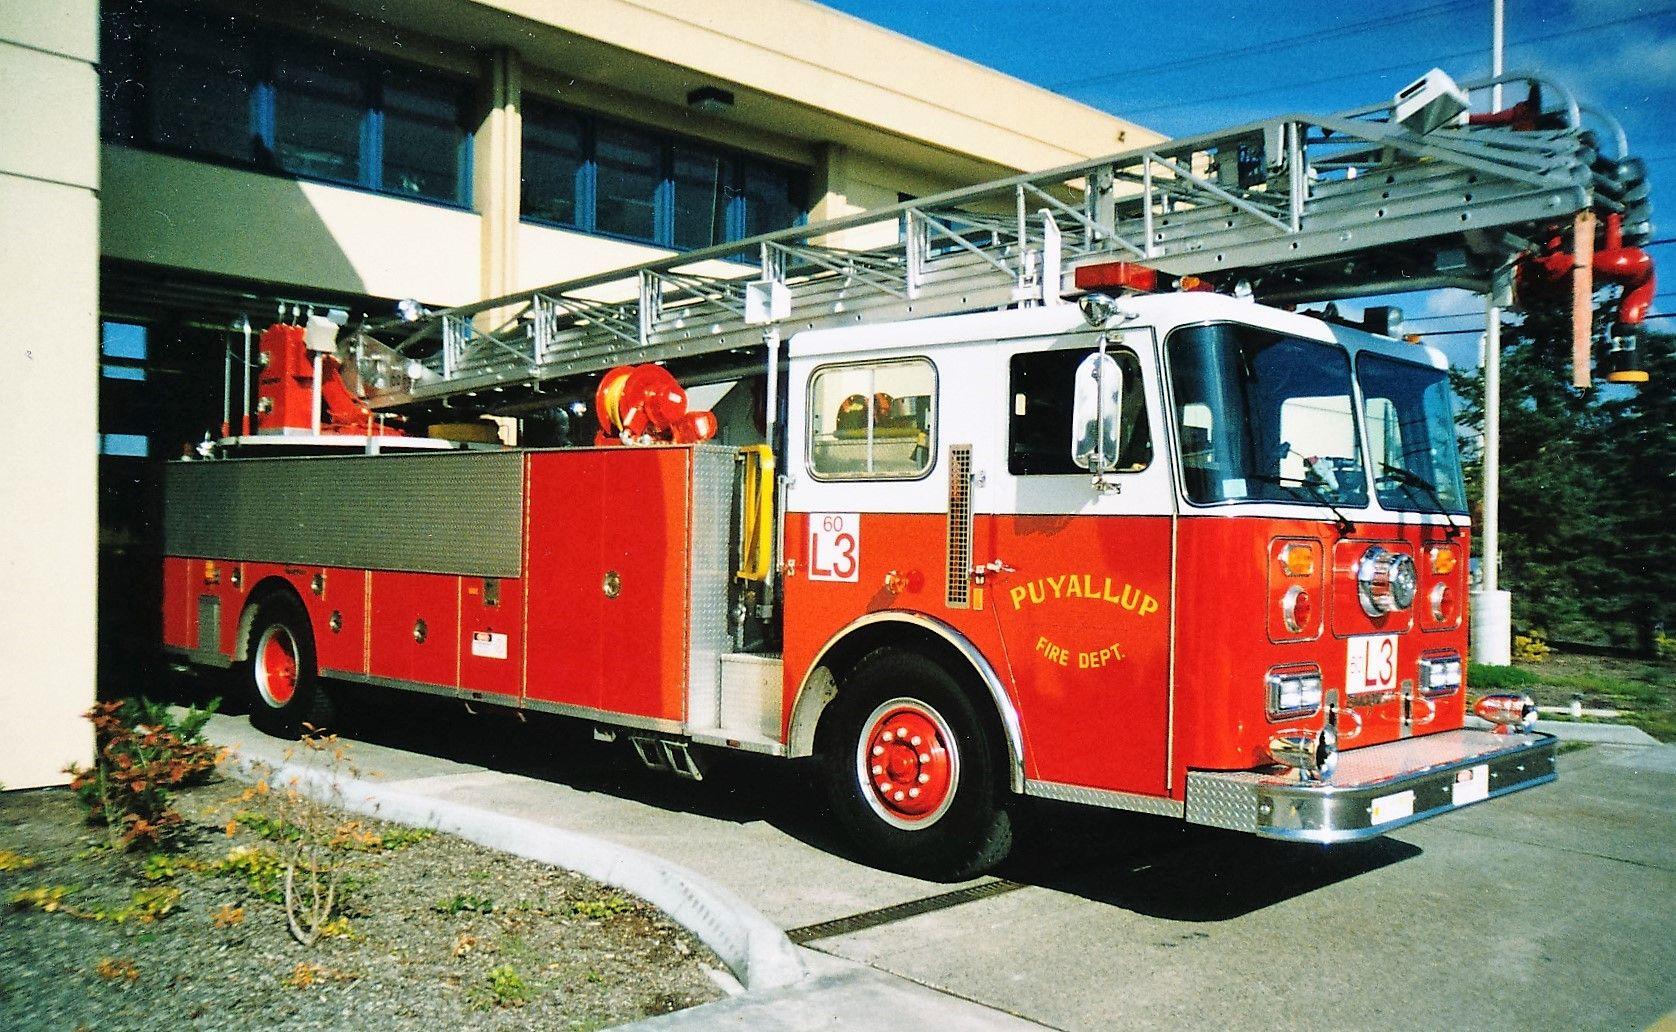 Puyallup fire department ladder 3 1989 seagrave 100 rear